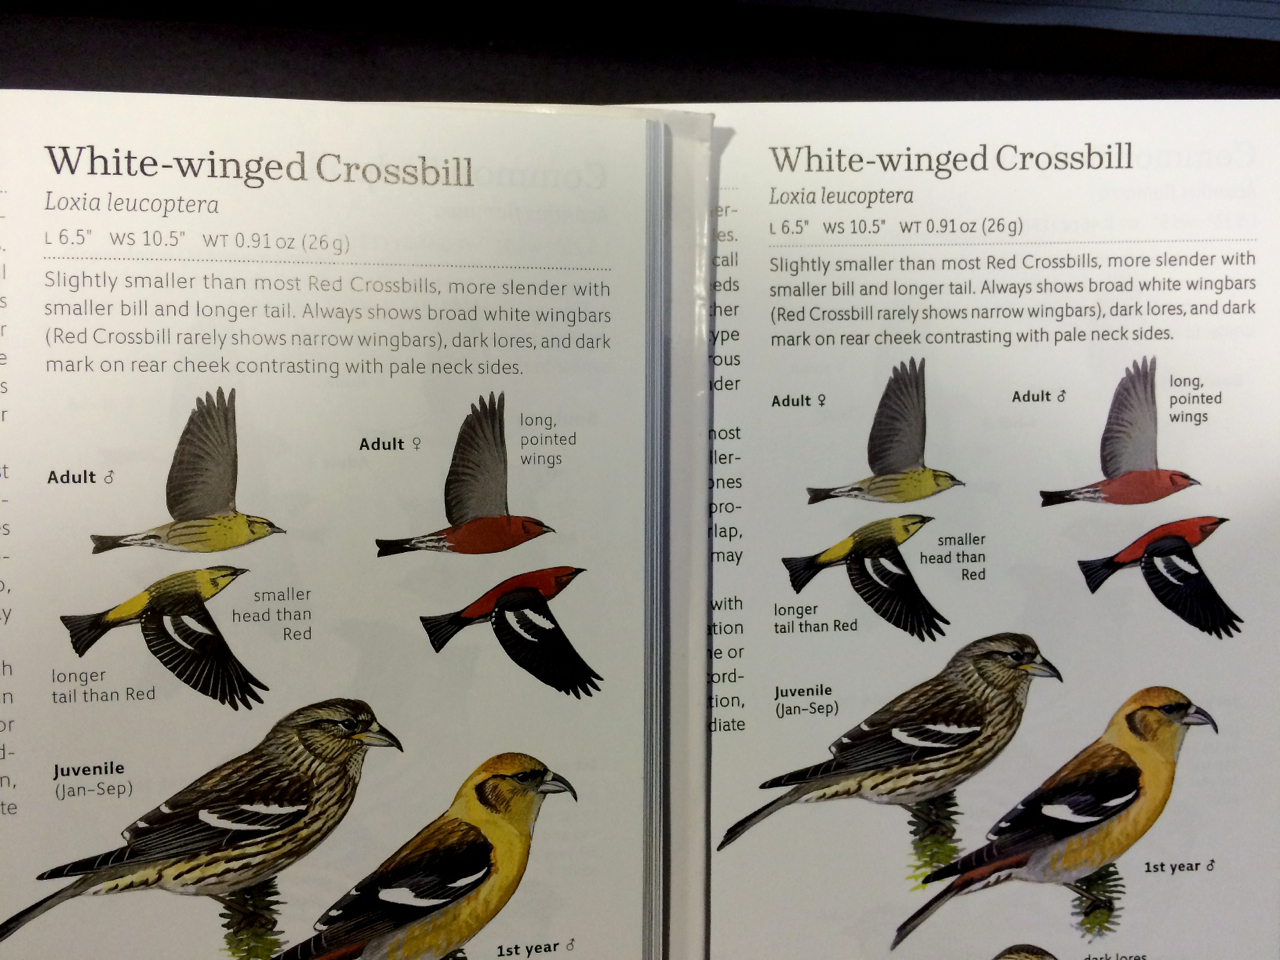 Typos like the white-winged crossbill sex mixup have been addressed as well. First printing on the left, second printing on the right.